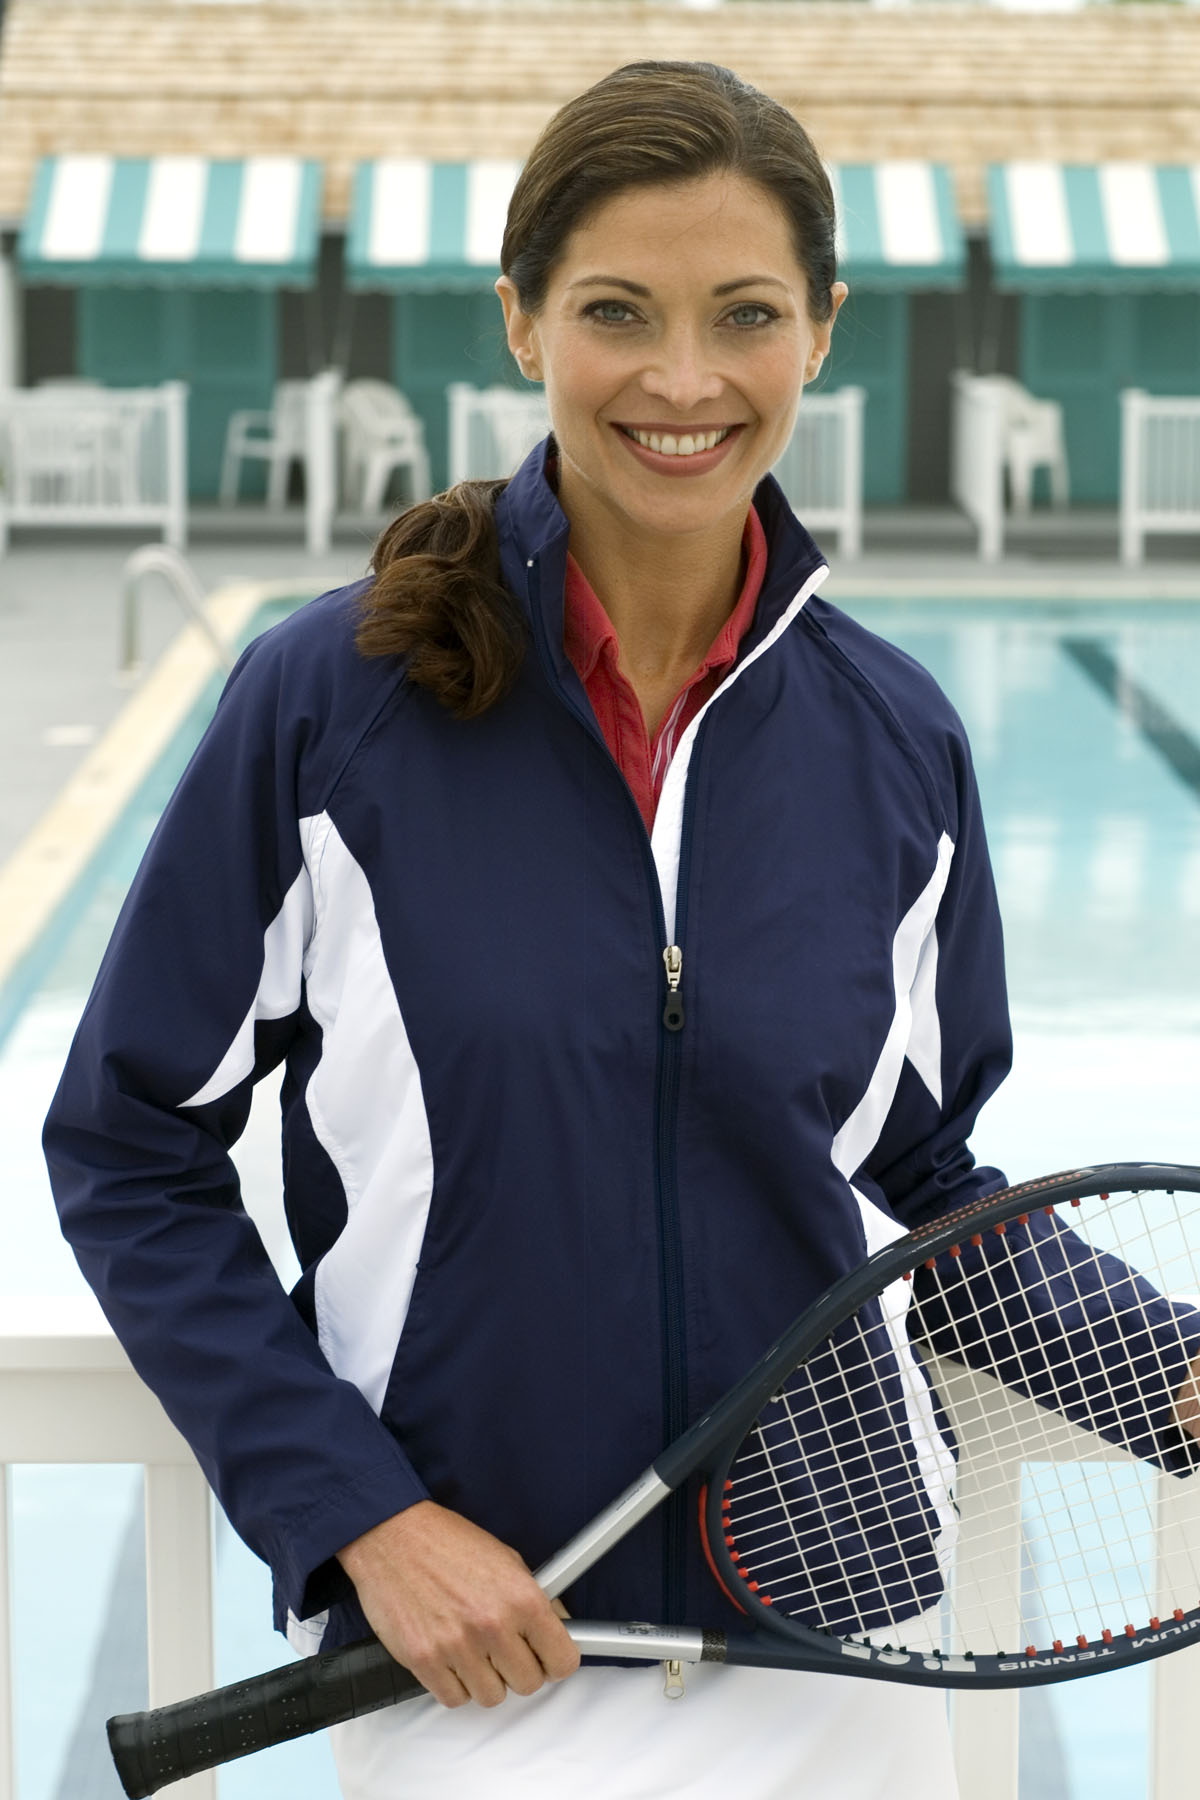 Vantage 6591 - Women's Convertible Wind Jacket